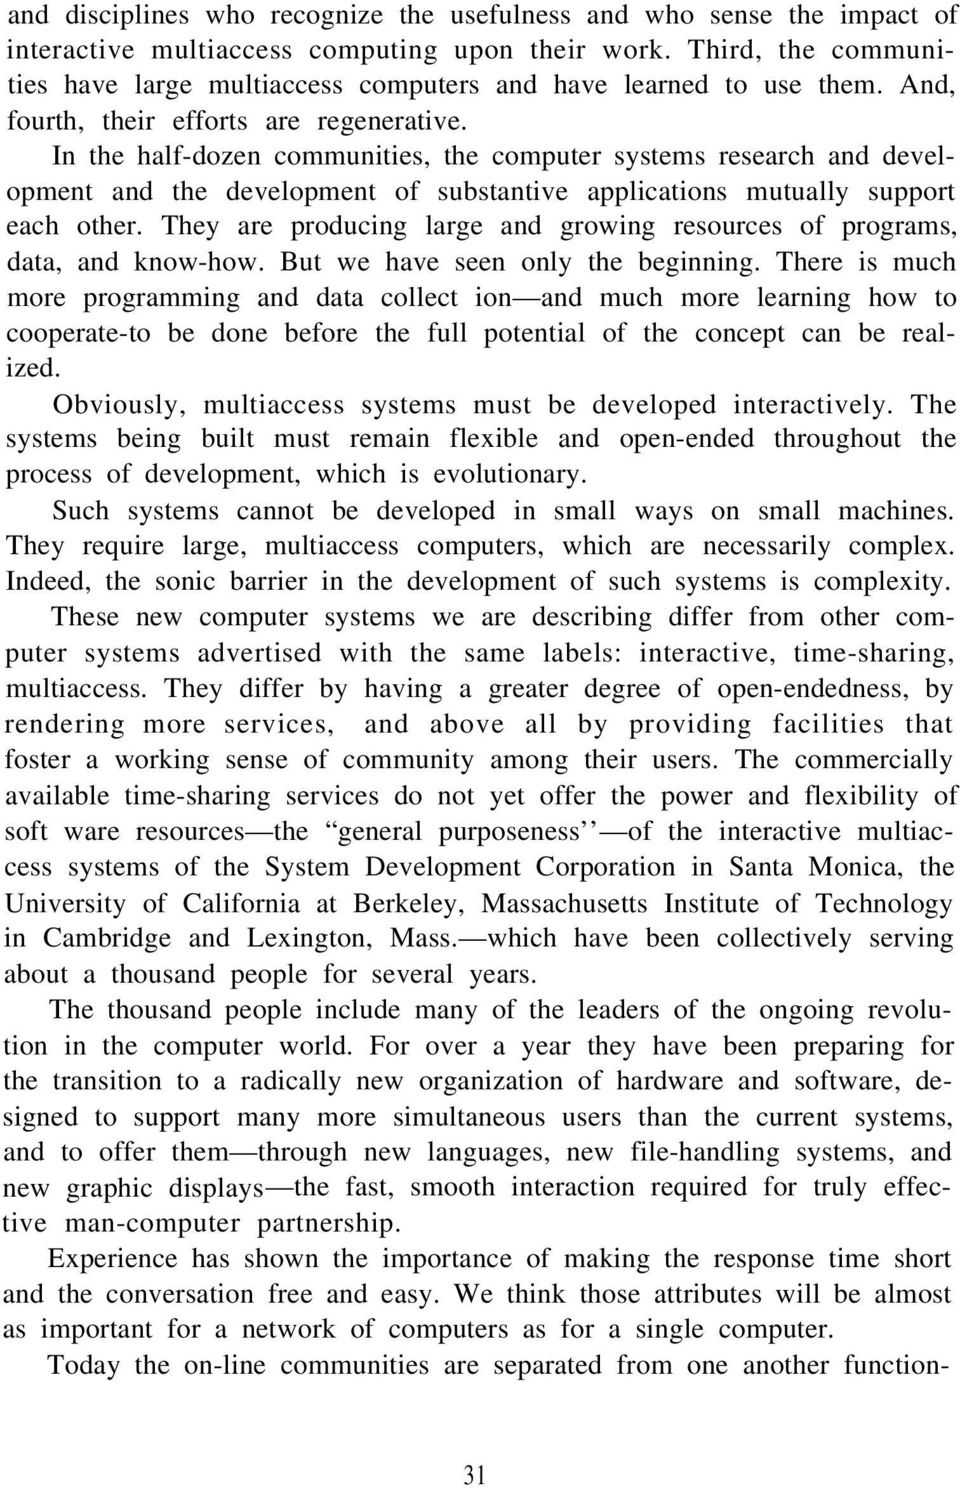 In the half-dozen communities, the computer systems research and development and the development of substantive applications mutually support each other.